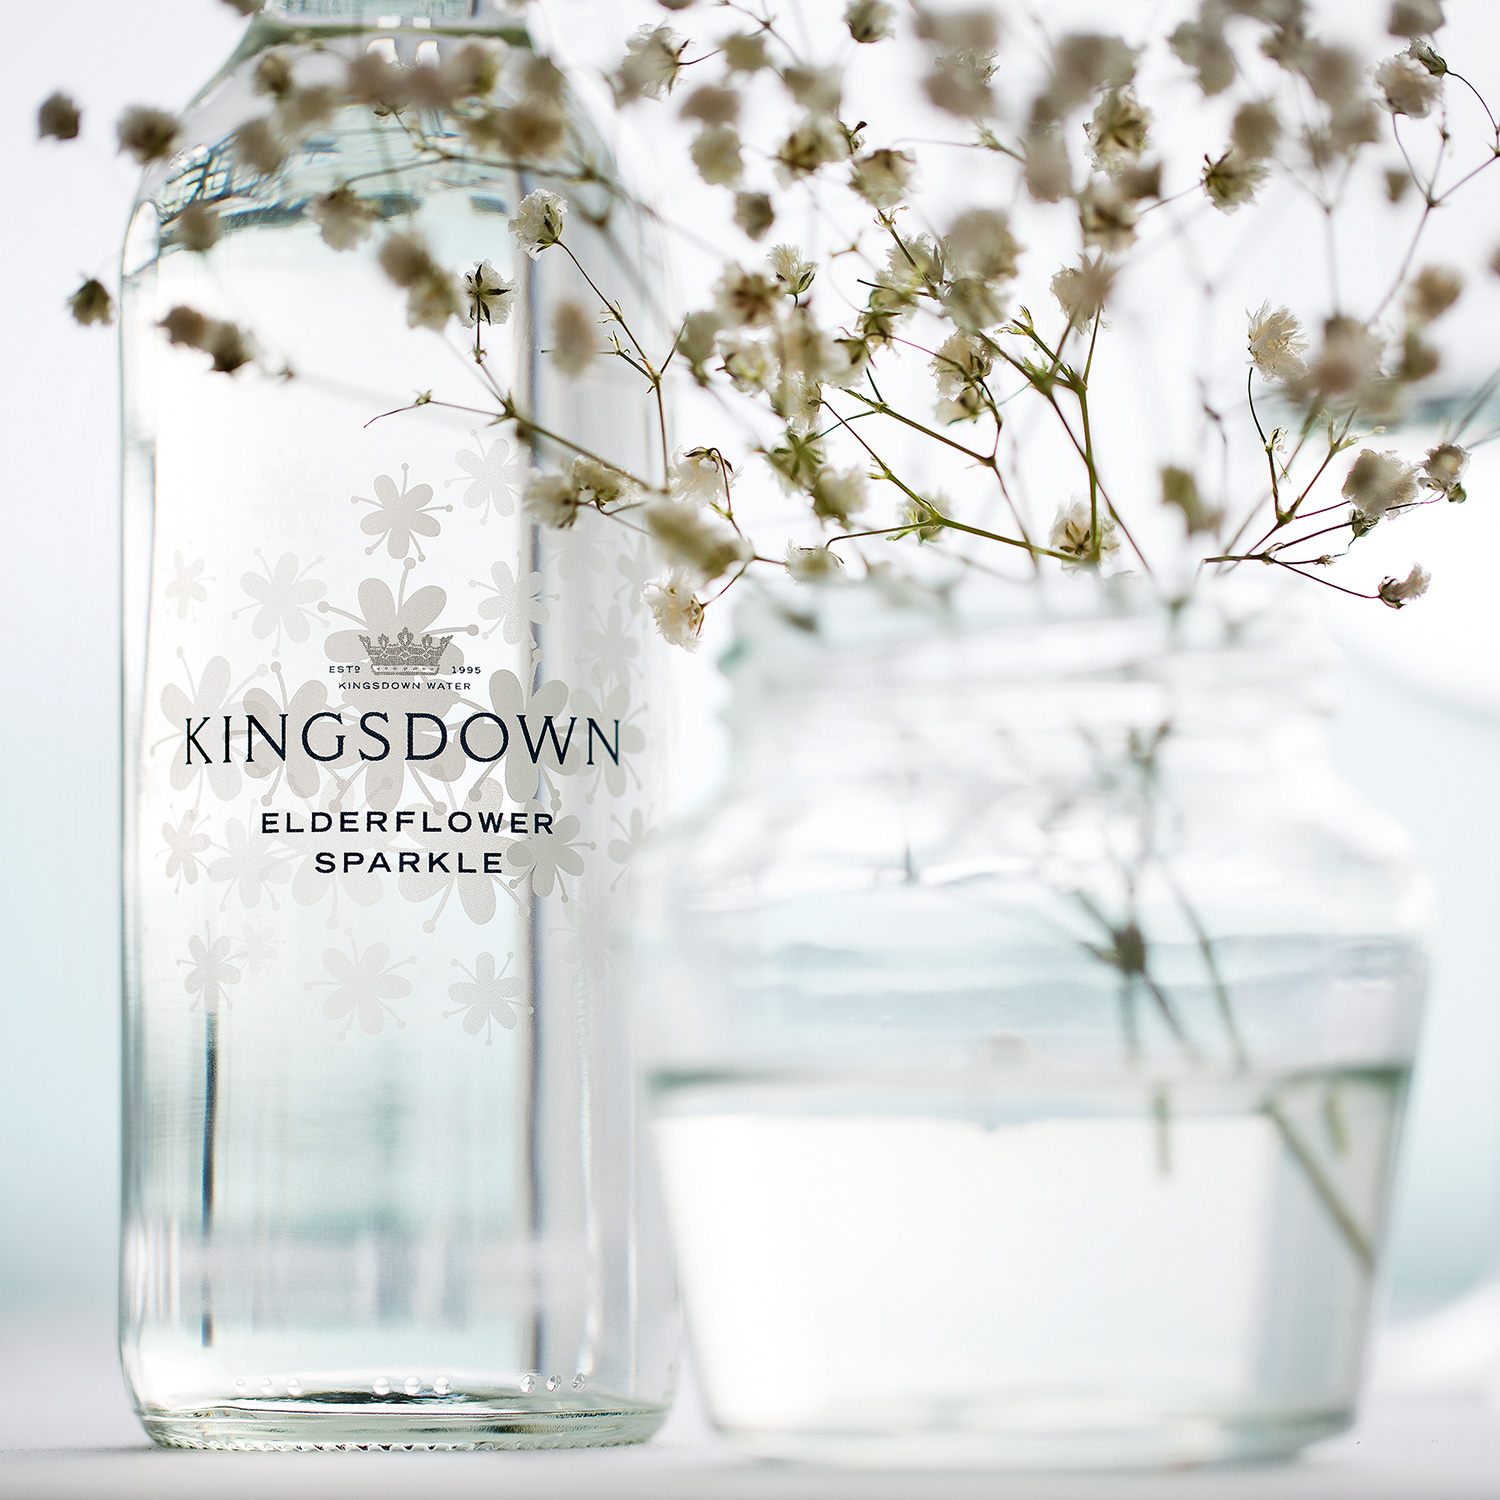 About-Kingsdown